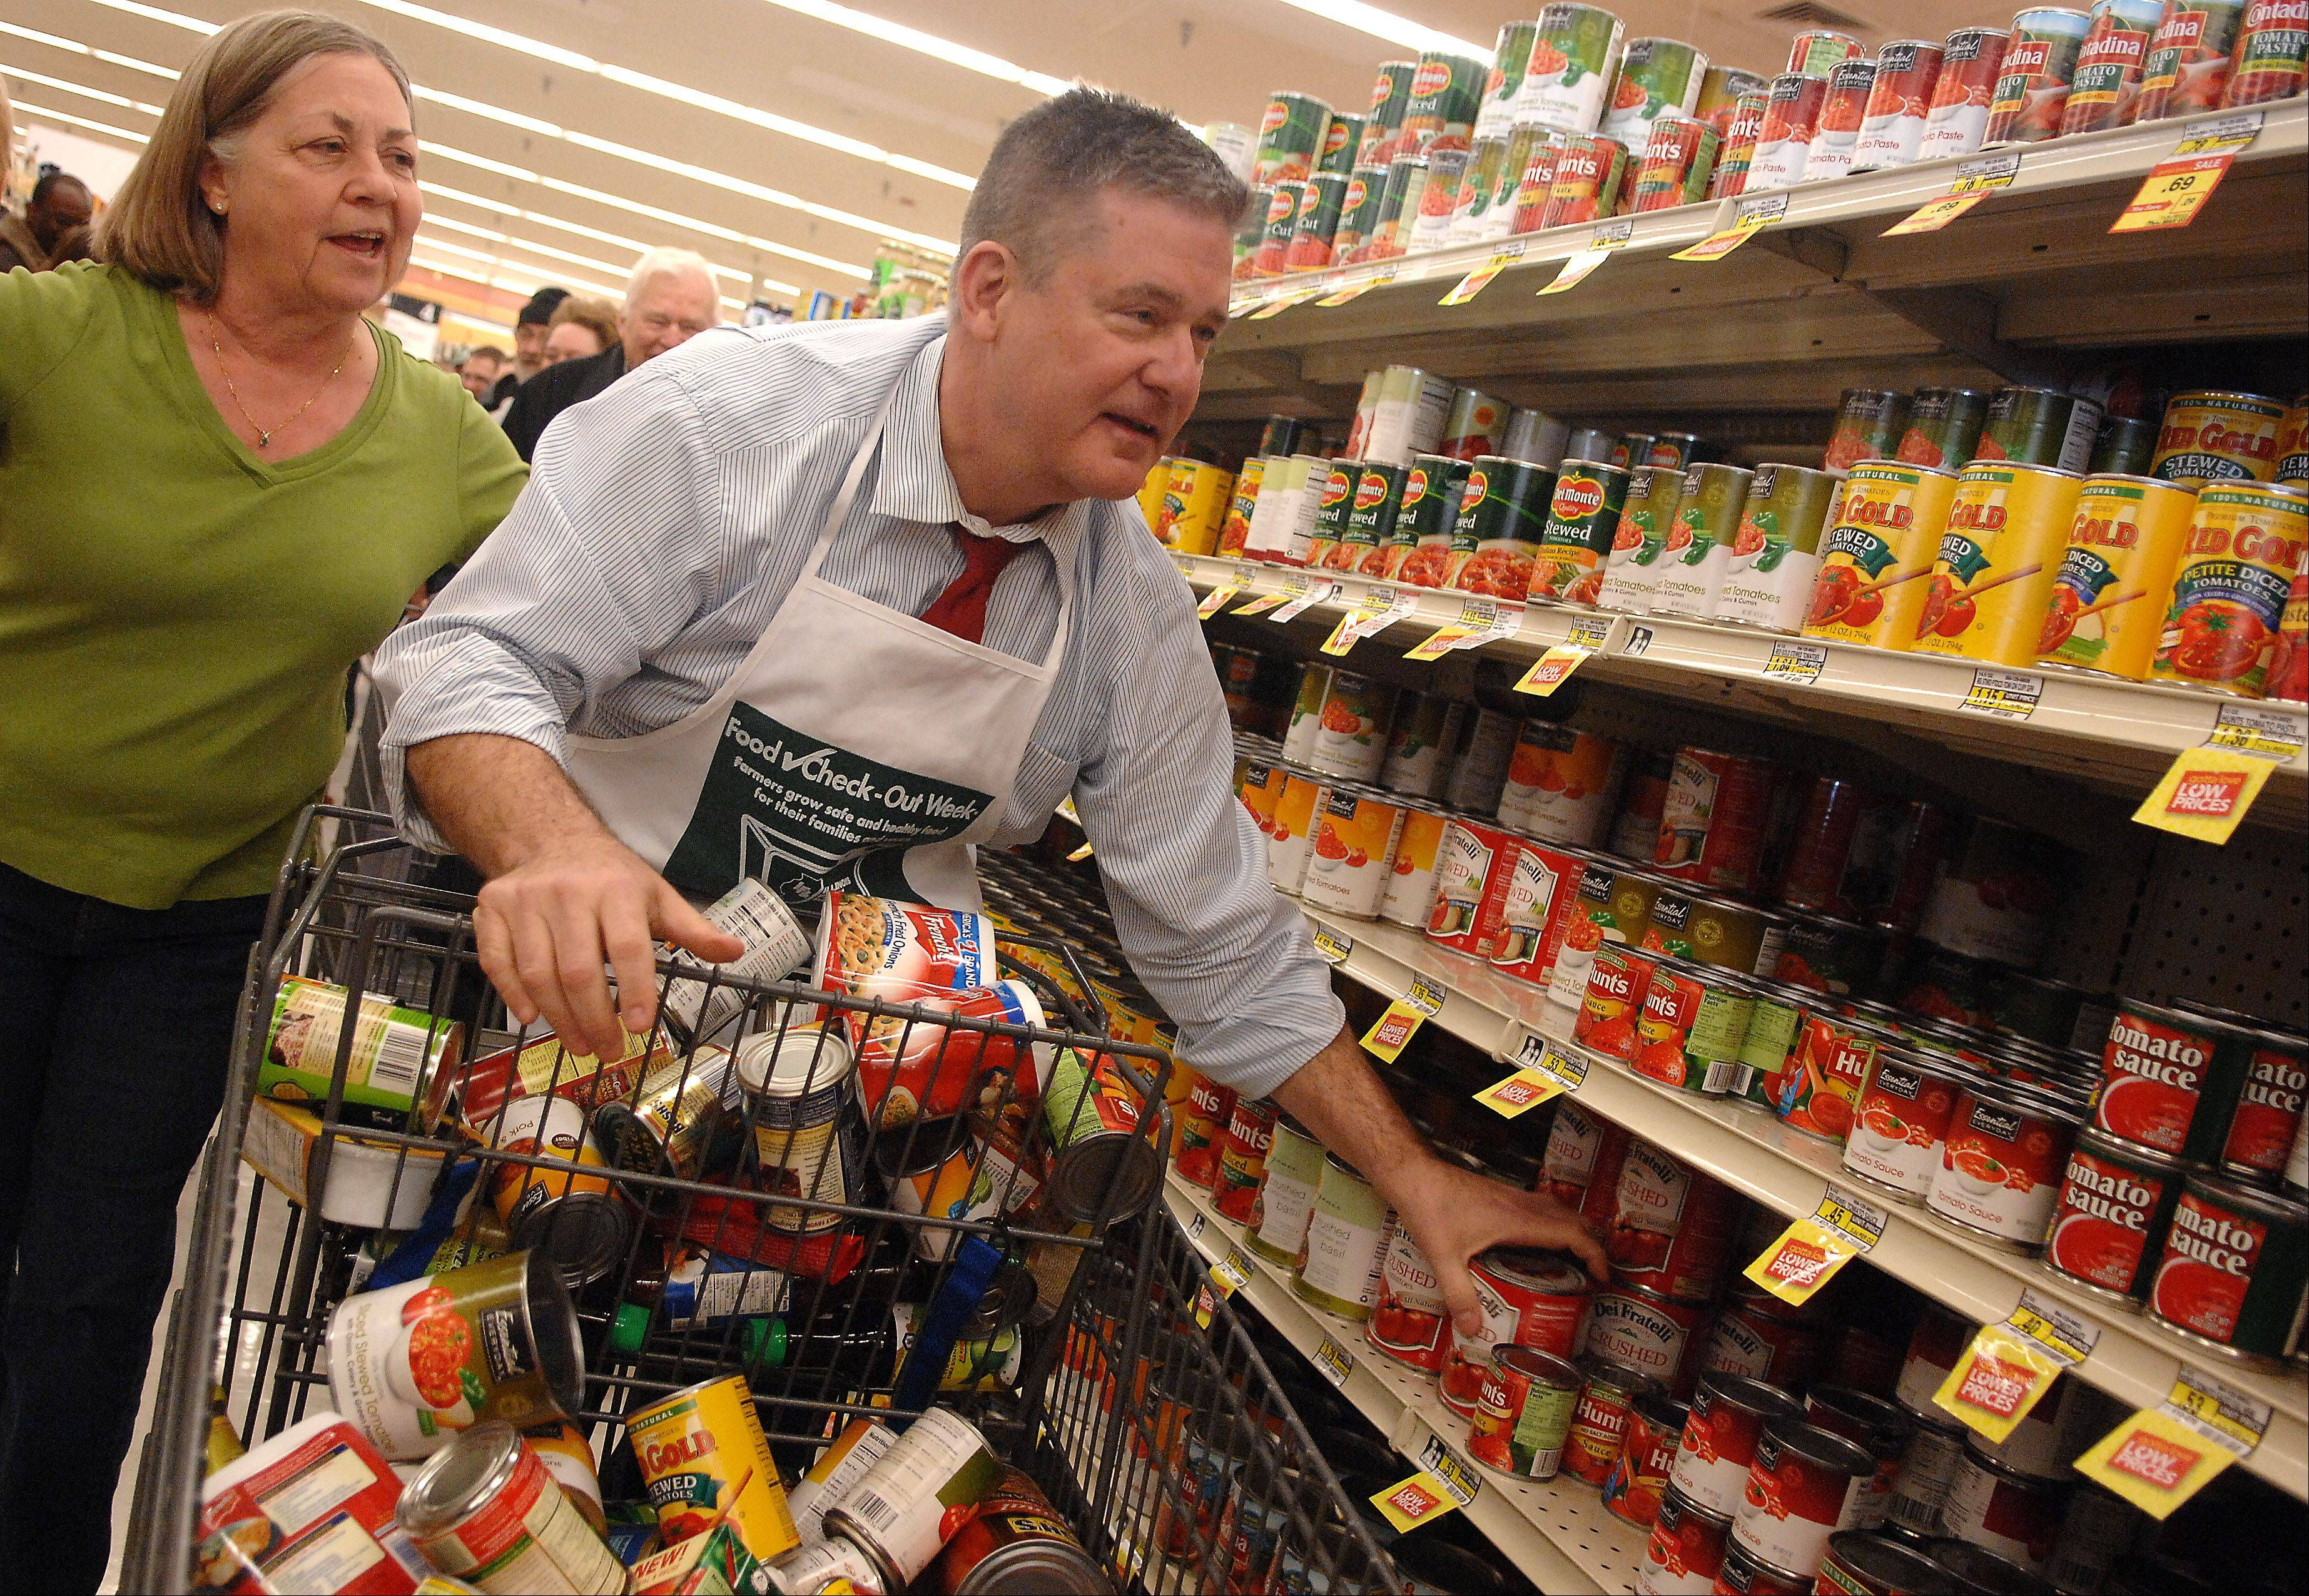 State Treasurer Dan Rutherford gets help from Linda Dahms of the Batavia Interfaith Food Pantry while competing in the Food Check-Out Challenge Monday at the Jewel grocery store in Batavia. The event was sponsored by the Kane County Farm Bureau and pitted Rutherford against State Sen. Karen McConnaughay, who was competing for Food for Greater Elgin. The two were seeing who could amass the most expensive bill while collecting nonperishable food for five minutes.